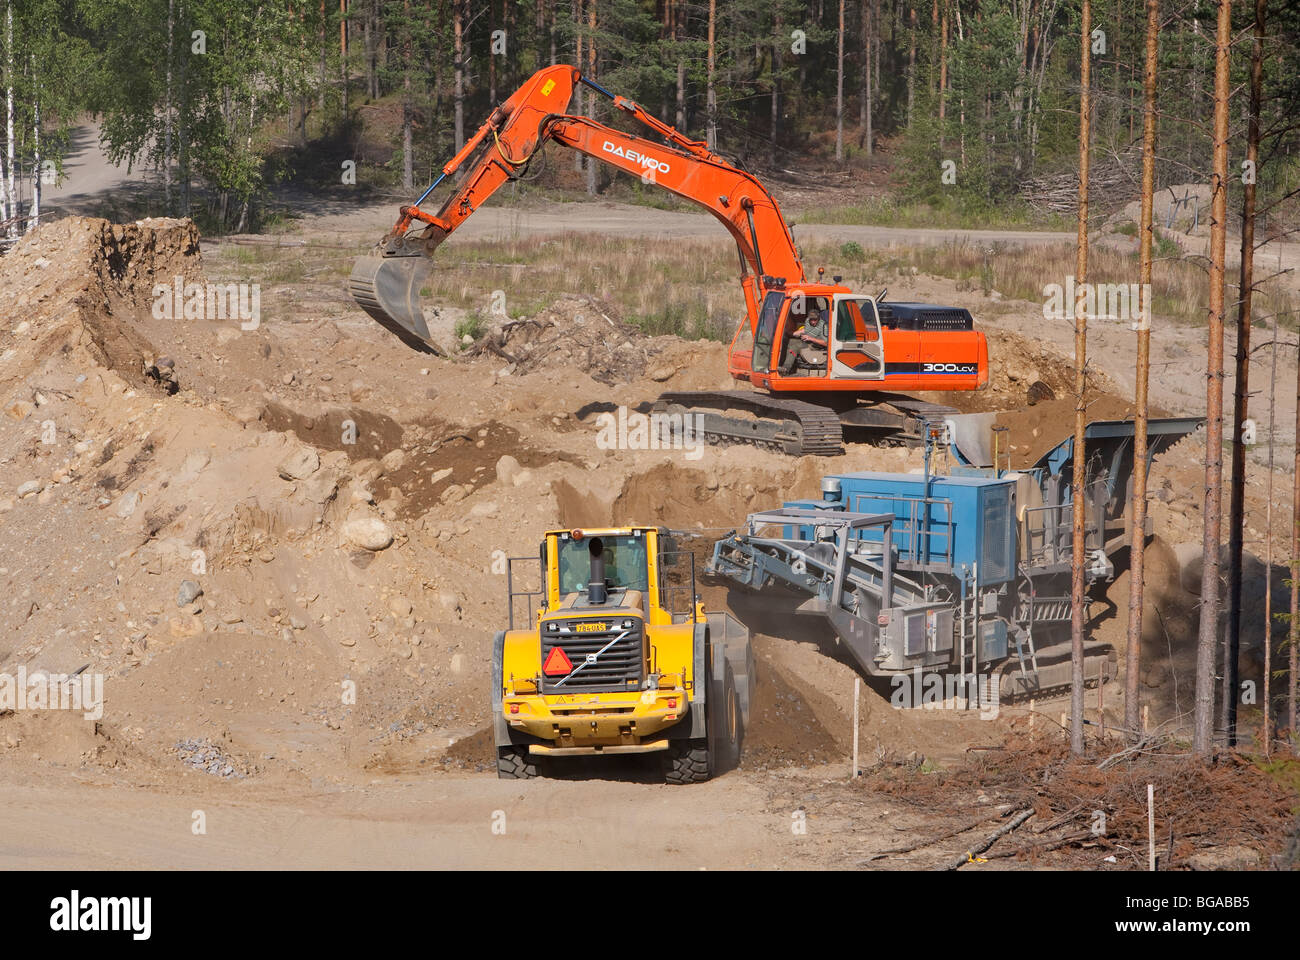 Production at sandpit; digger loads stones soil to crusher / separator and front loader , Finland - Stock Image